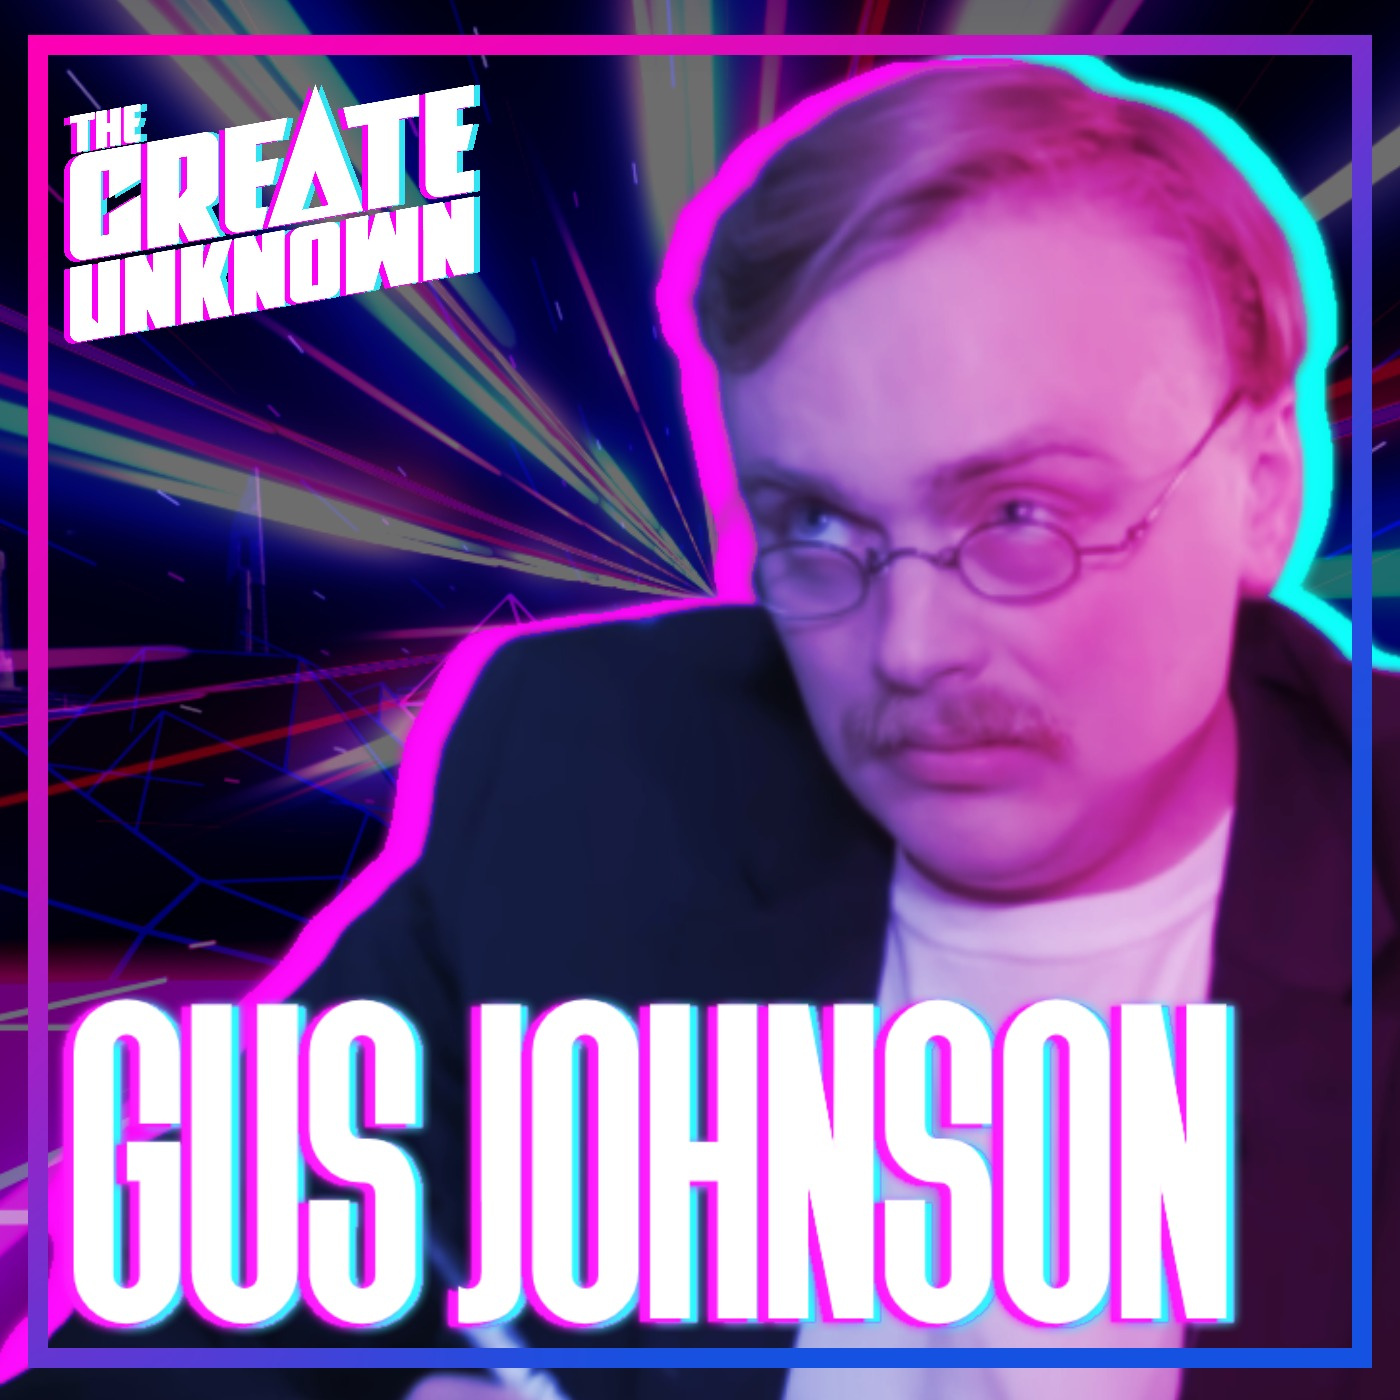 Gus Johnson enters The Create Unknown